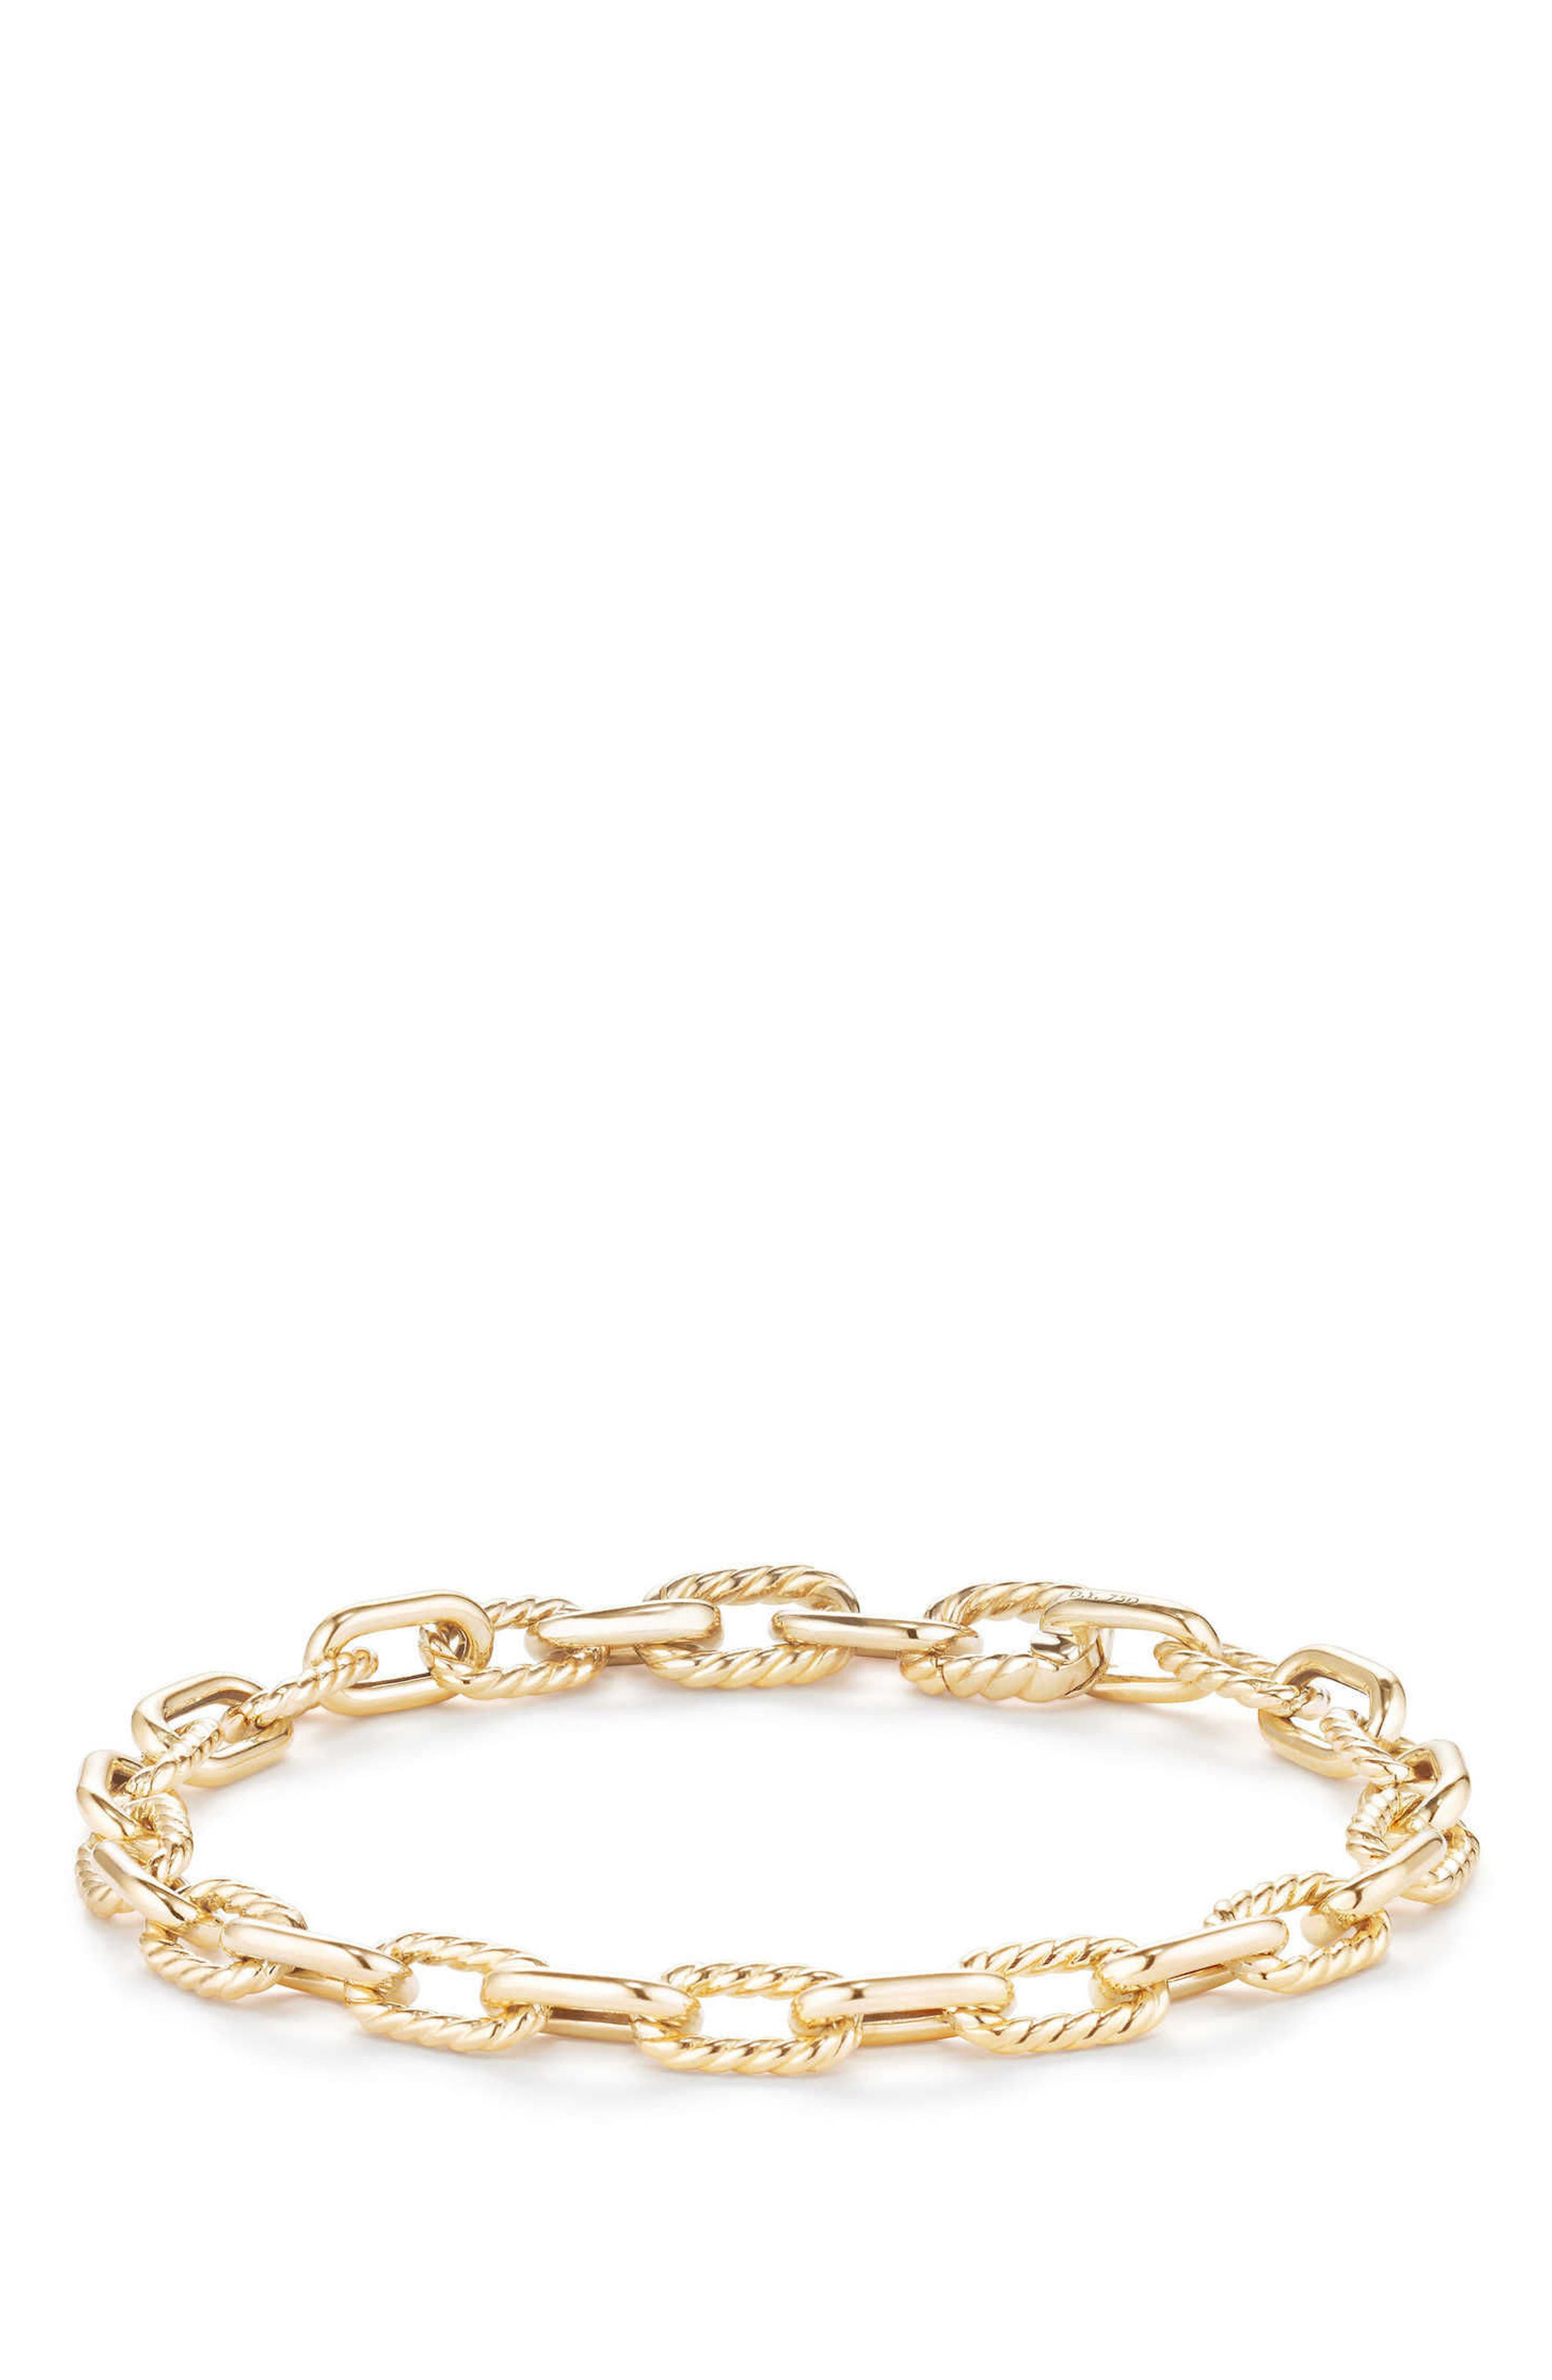 DY Madison Bold Chain Bracelet in 18K Gold,                             Alternate thumbnail 2, color,                             Gold